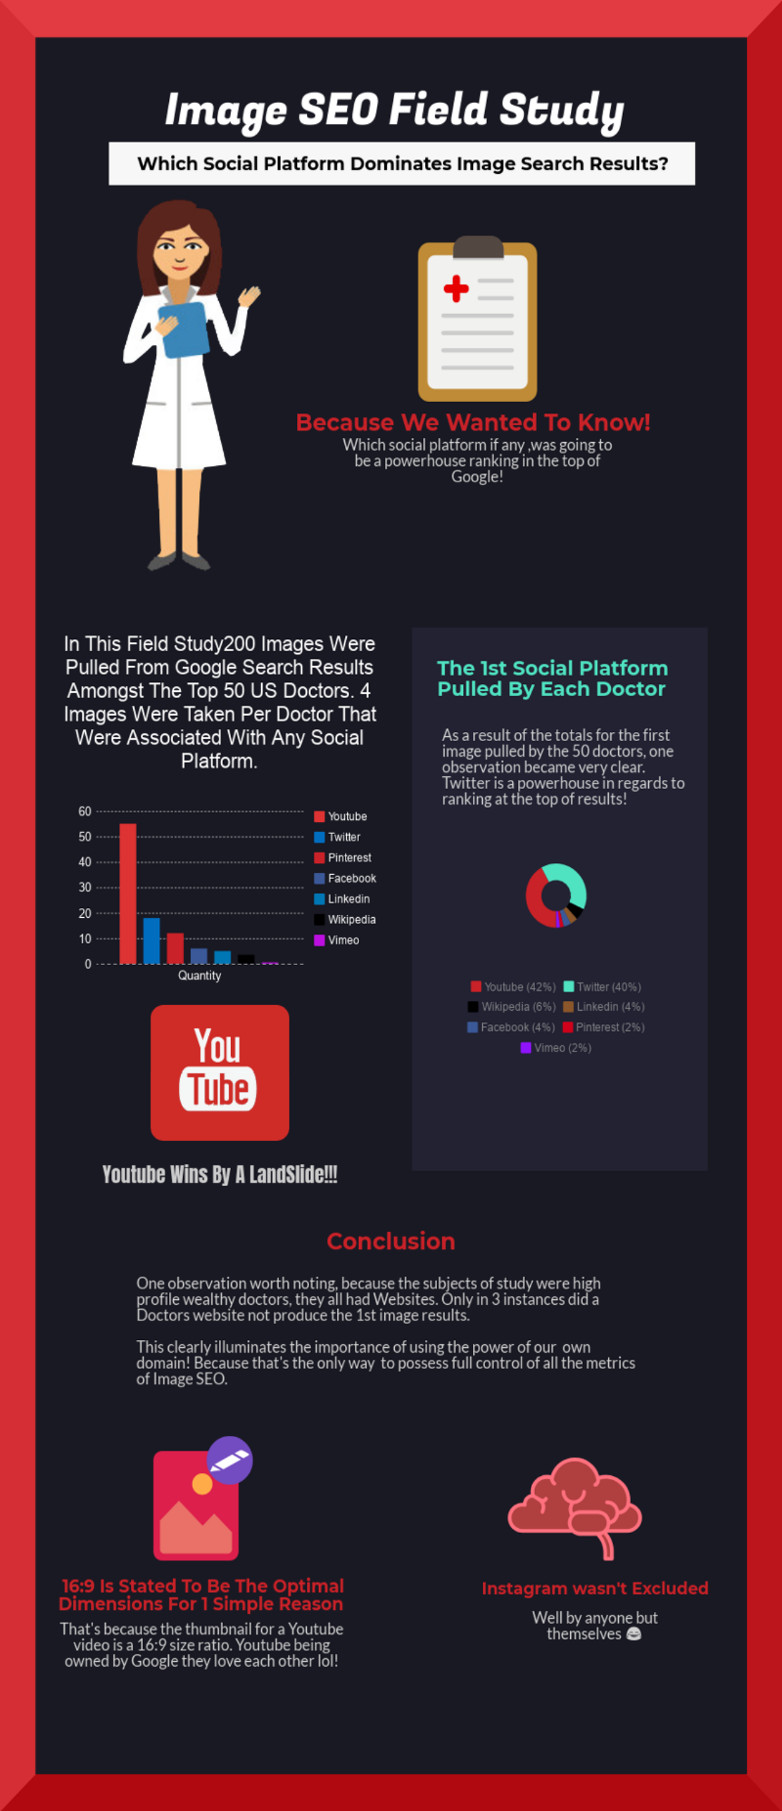 Advanced Image SEO Ranking Factors Field Study Infographic